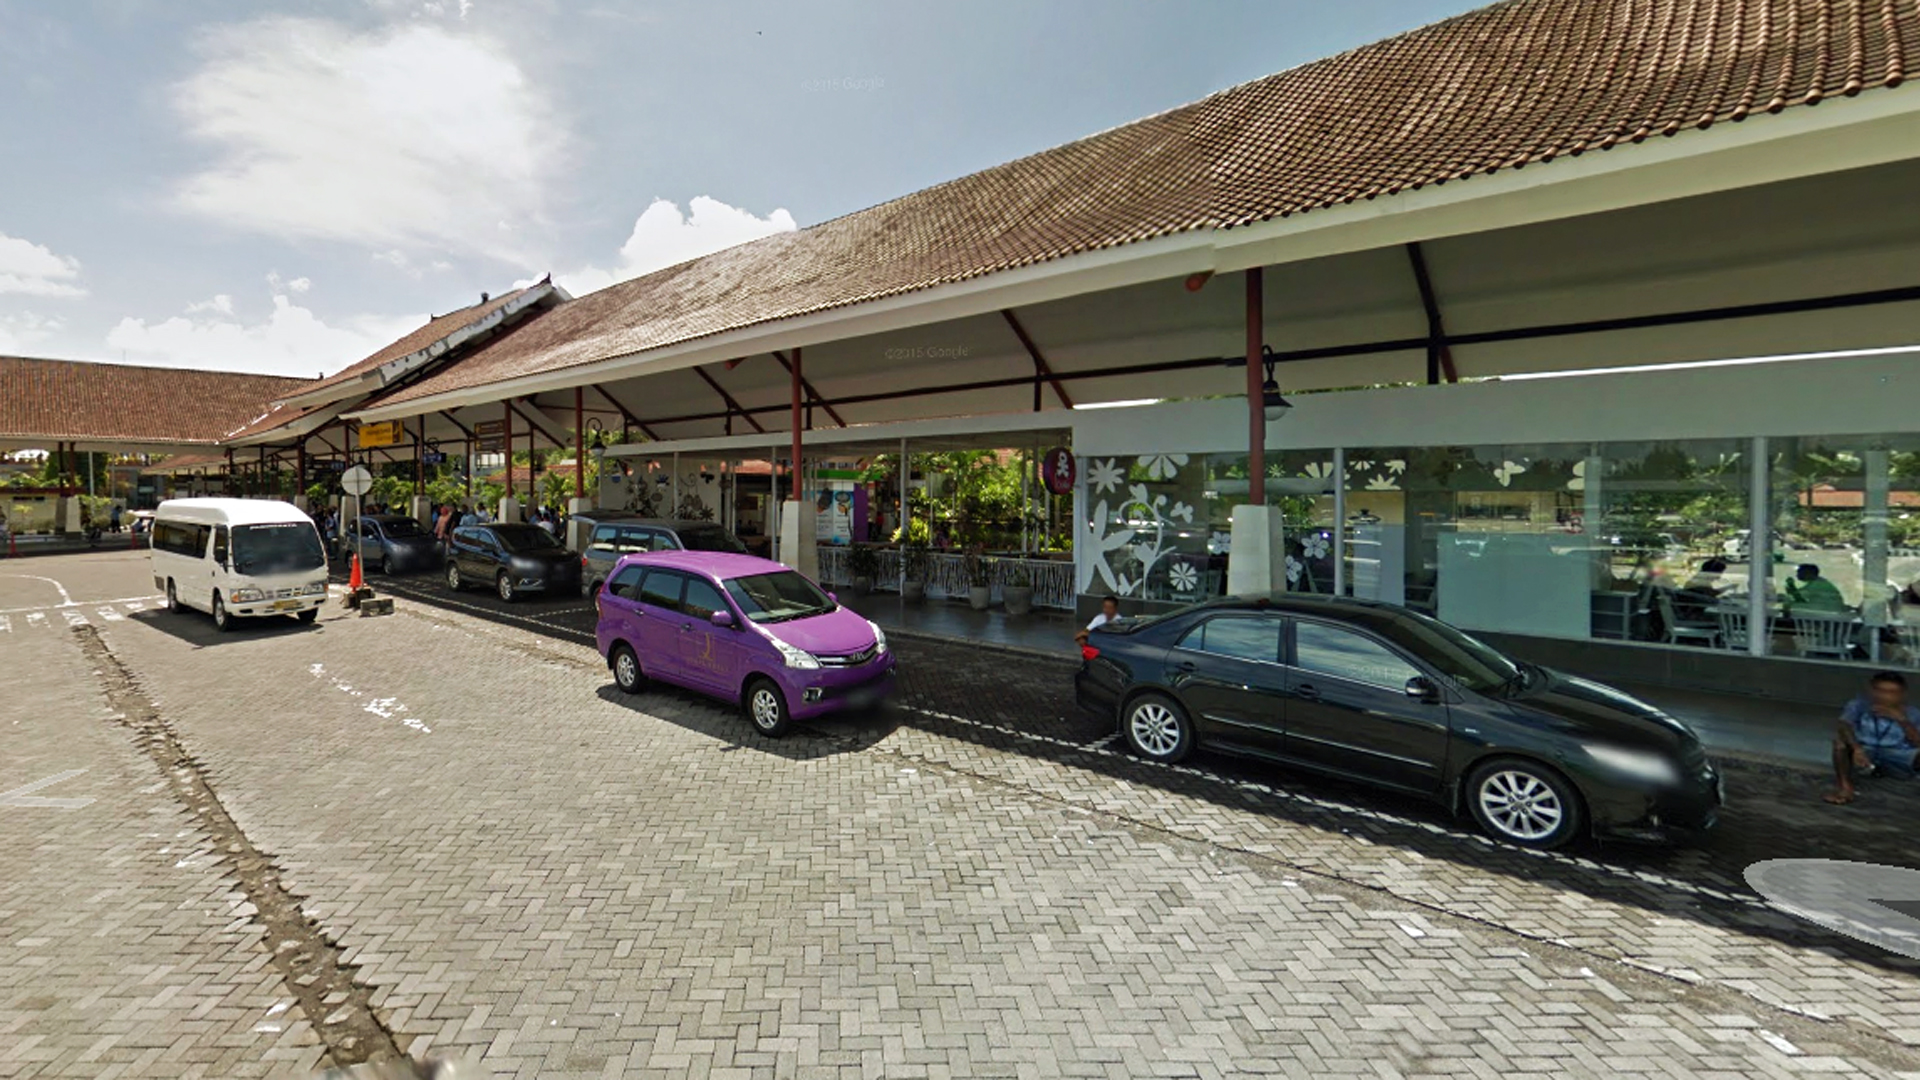 Ngurah Rai International Airport in Bali is seen in this image from Google Maps.